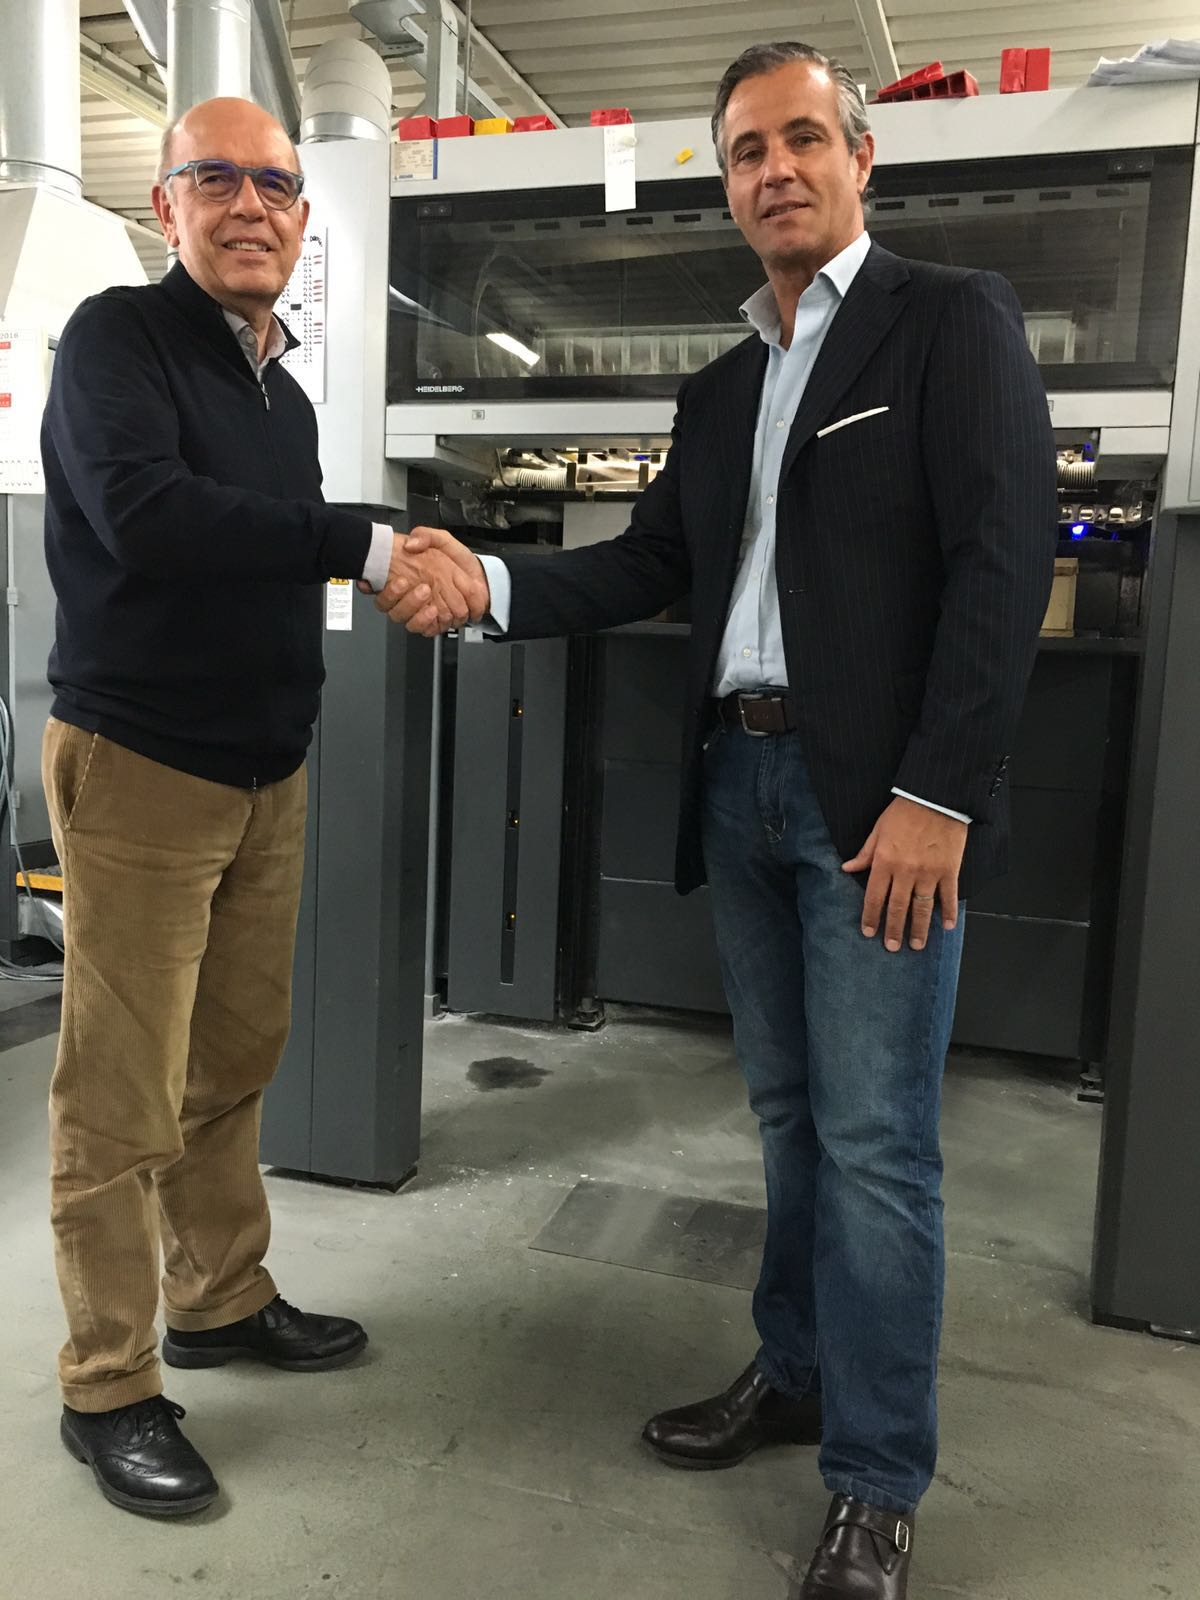 Dr. Roberto Conti shakes hands with AMS' Paolo Nascimbeni during the recent commissioning of their all-new AMS XP9 Series LED UV Printing System